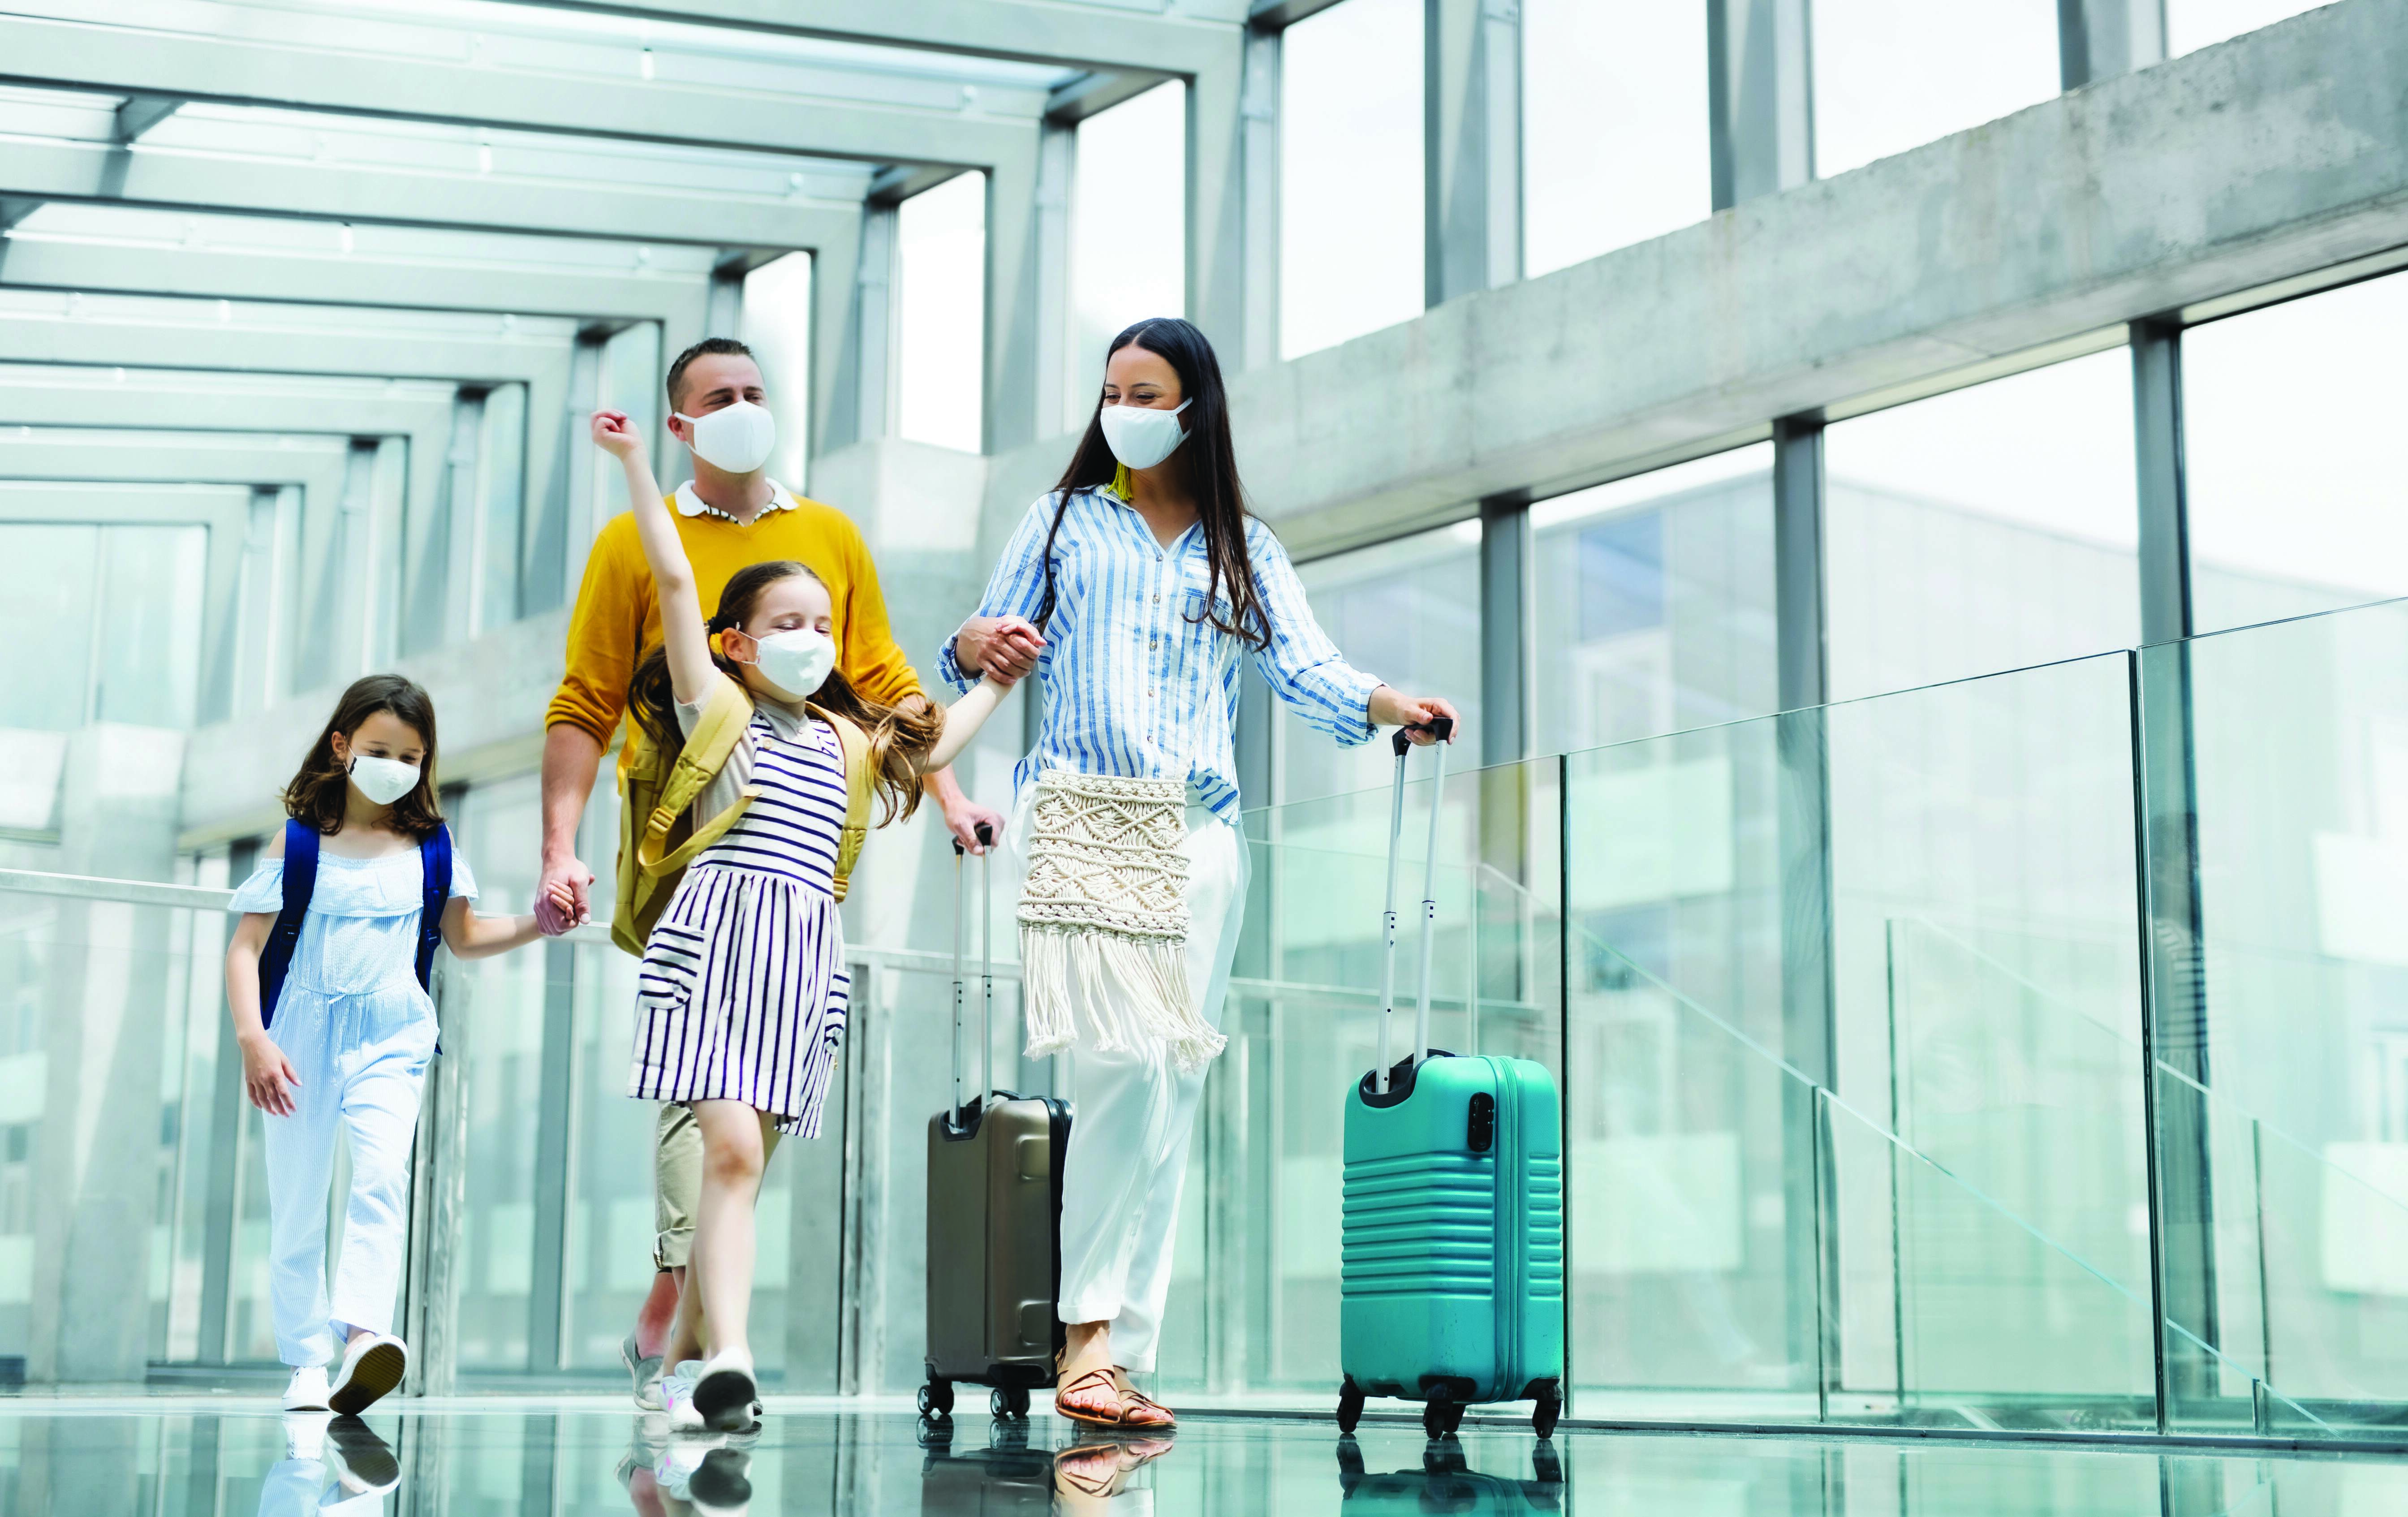 Looking for safe post-pandemic travel ideas? Leave it to the experts